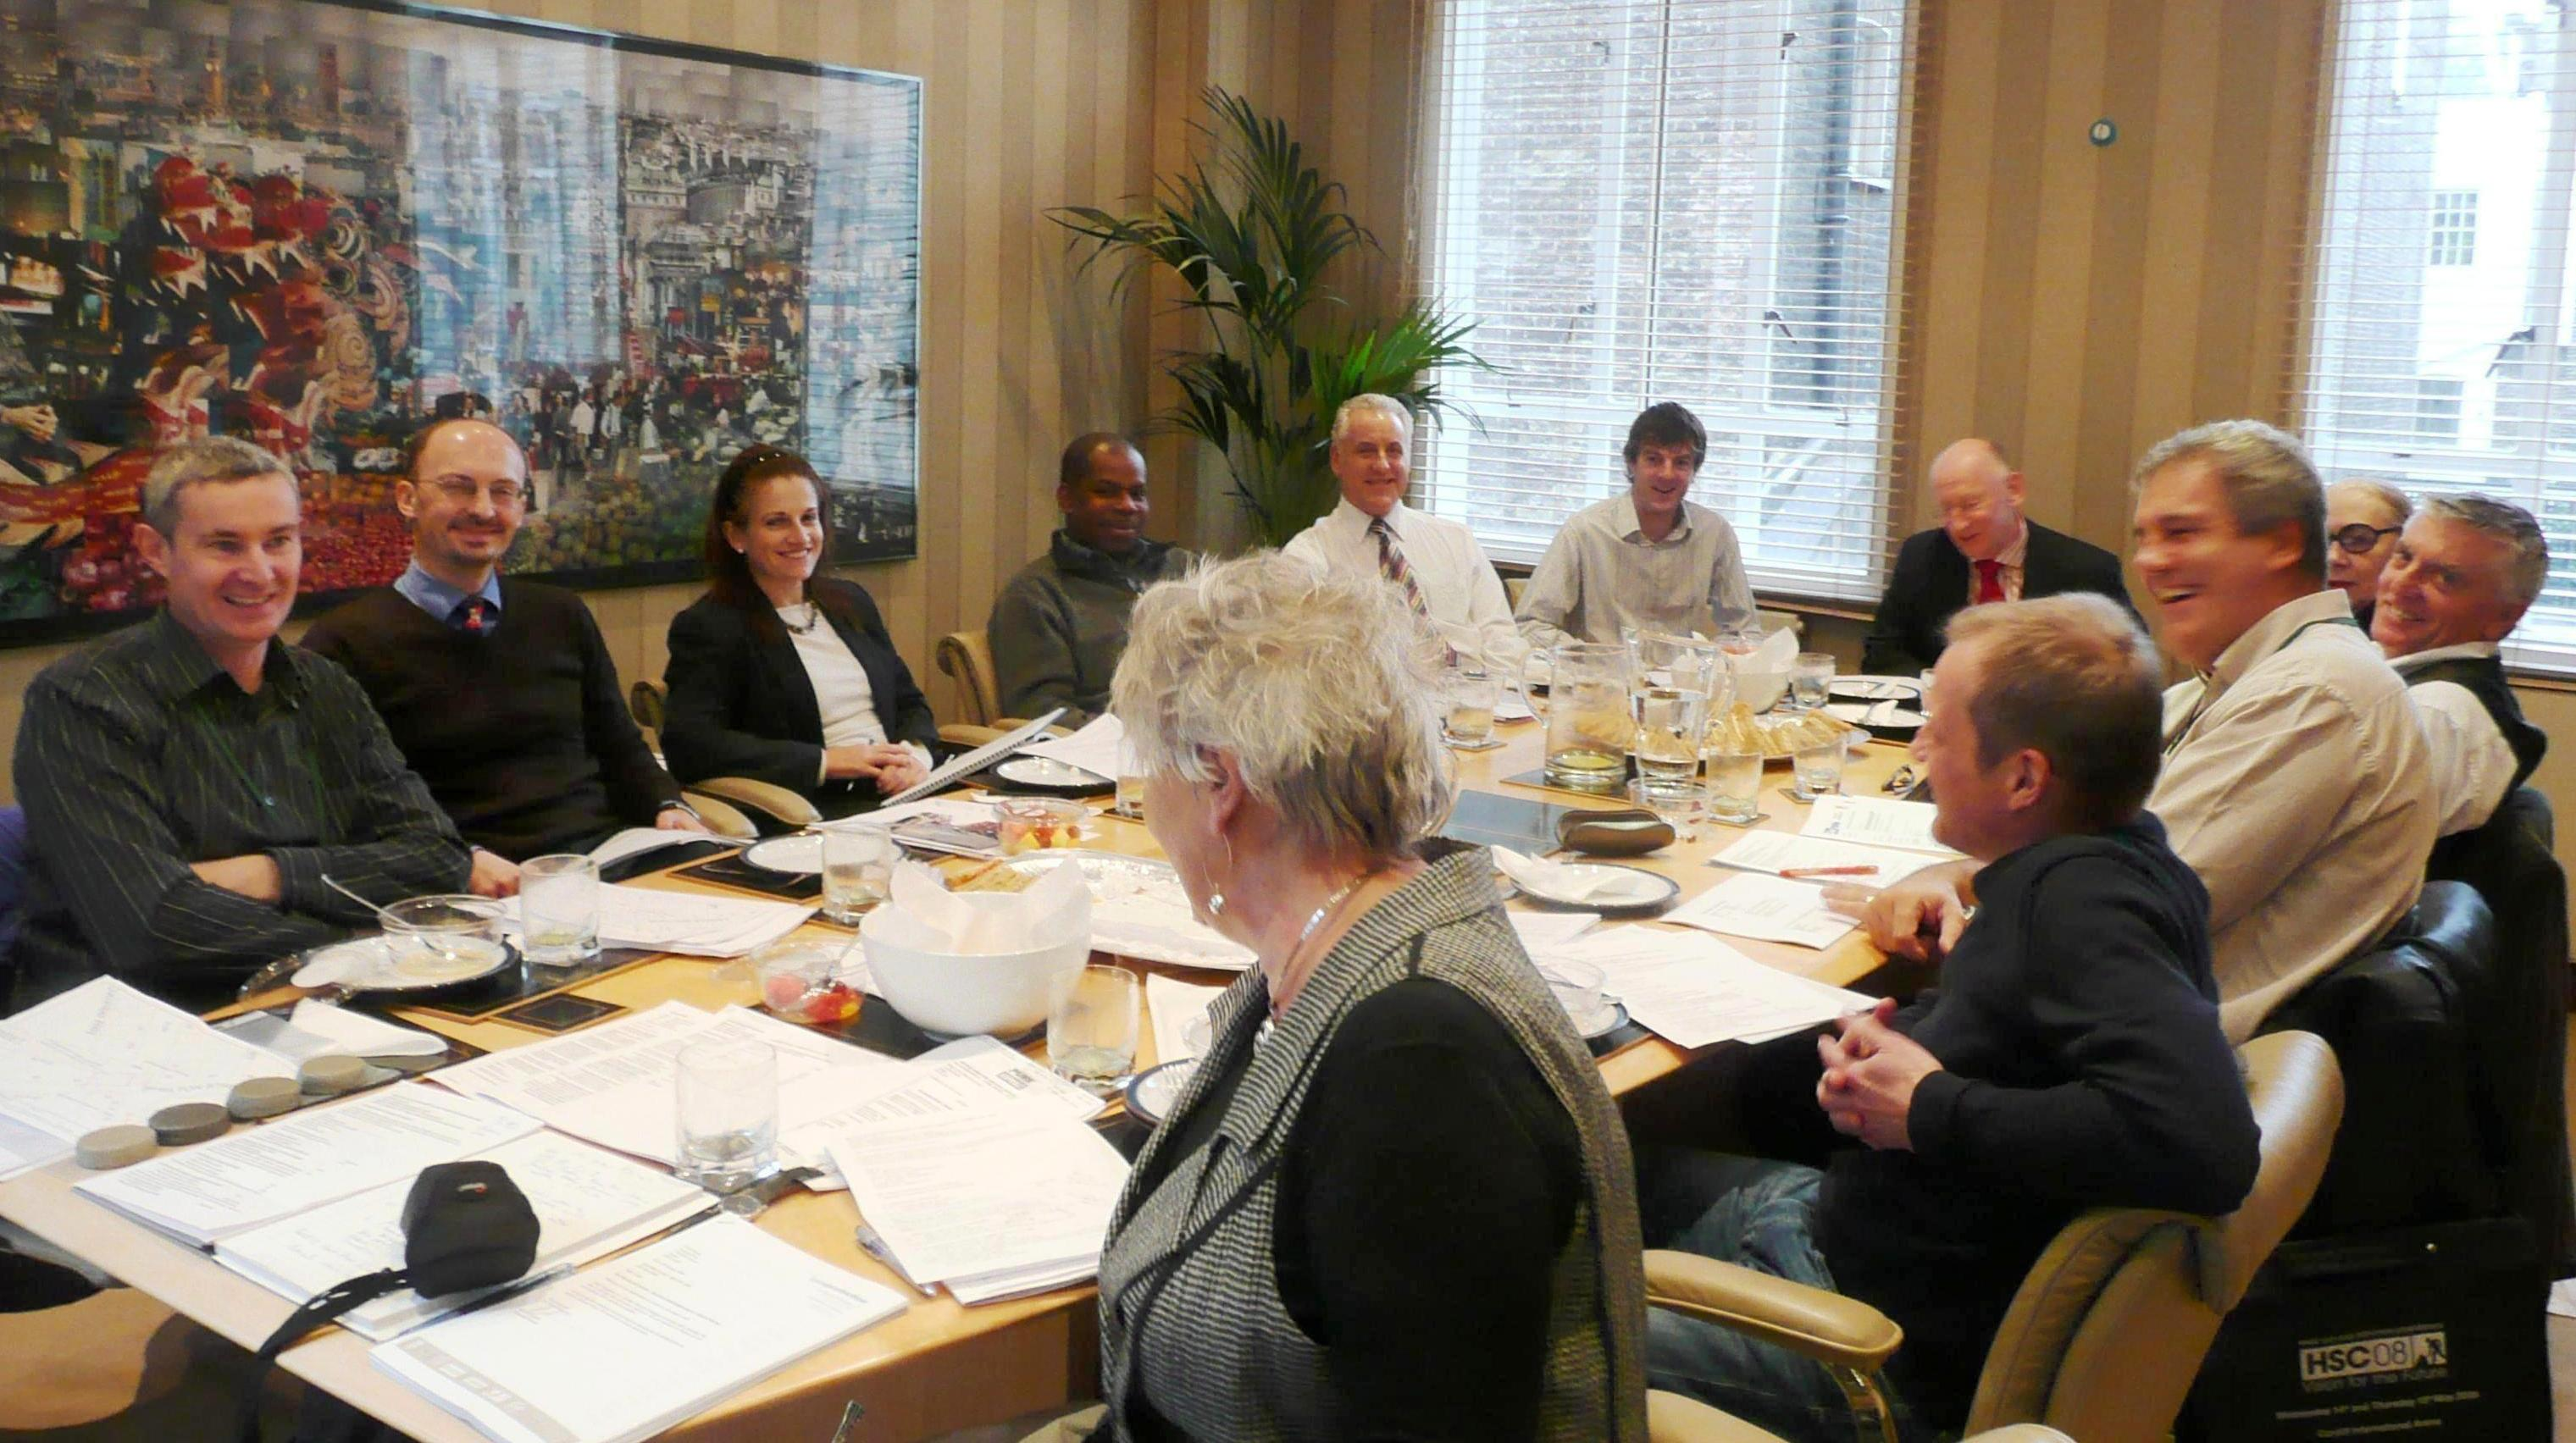 2005: Westminster City Council's Chris Mason gives a talk on carriage-way treatments to the Environment Committee.